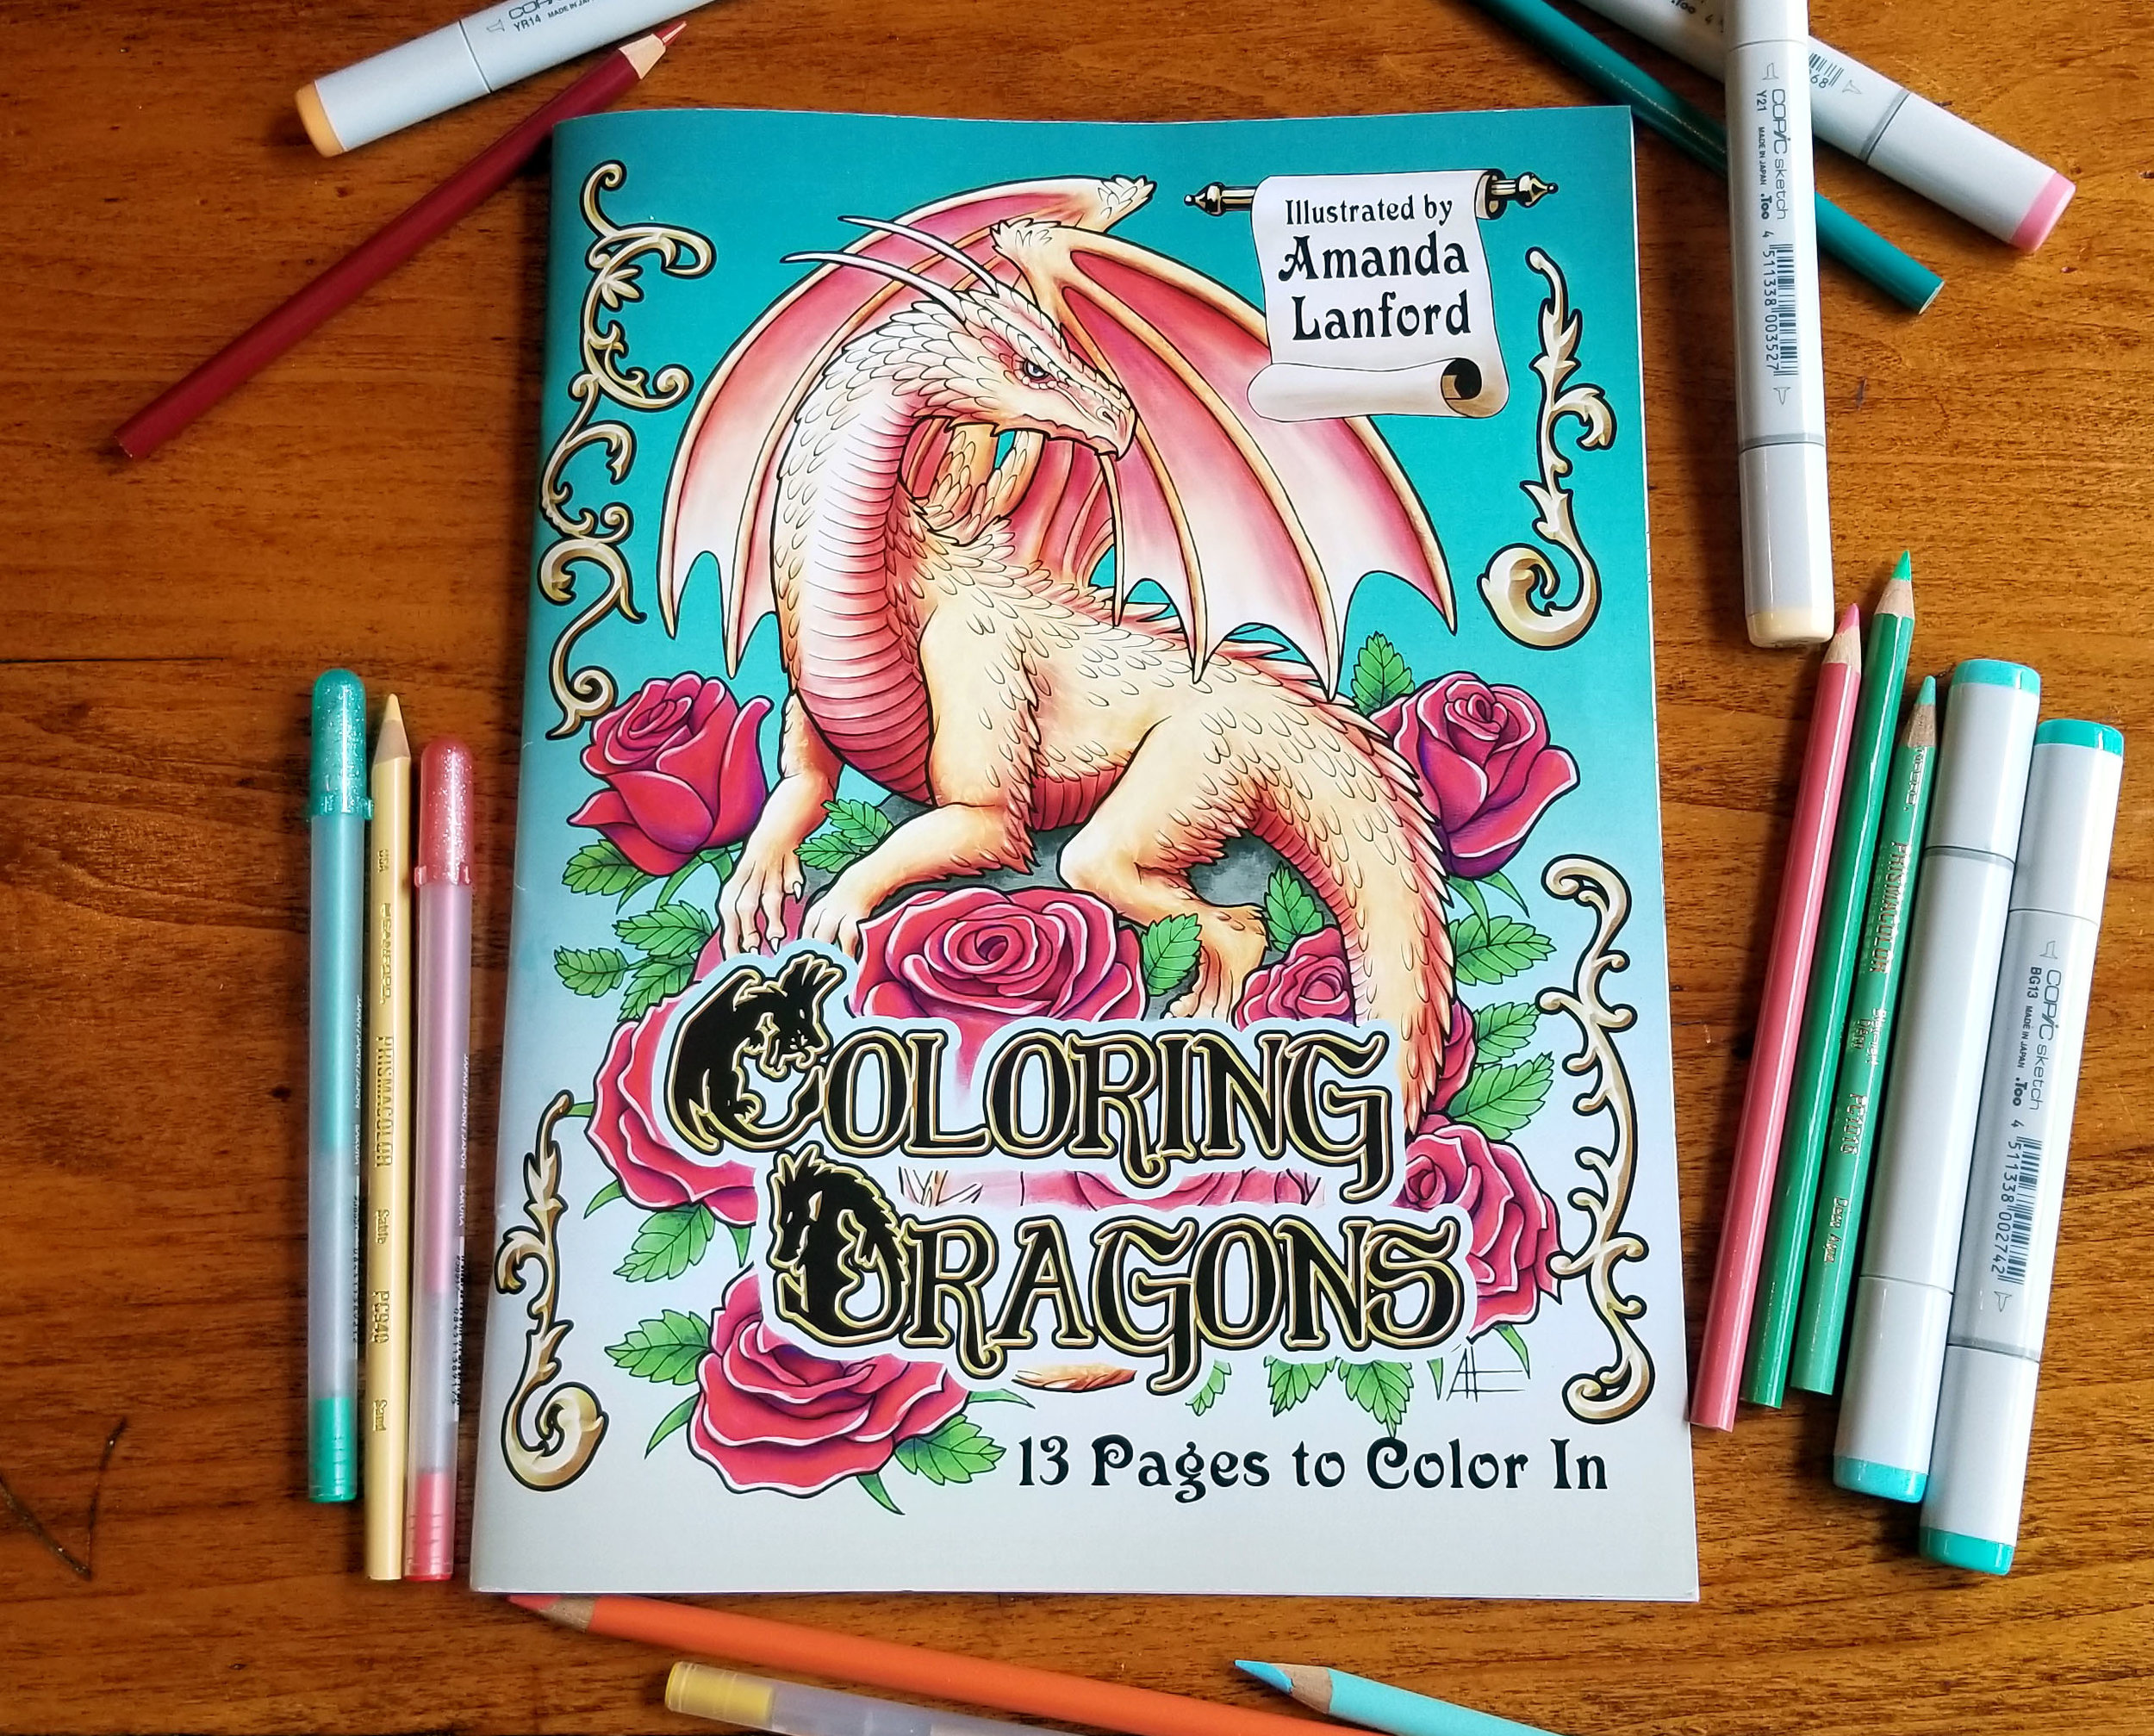 Here Be Dragons…To Color! - This fantasy coloring book contains 13 detailed pages of artwork featuring all sorts of dragons, from tiny hatchlings perched on a flower to mountain-sized monsters and everything in between.